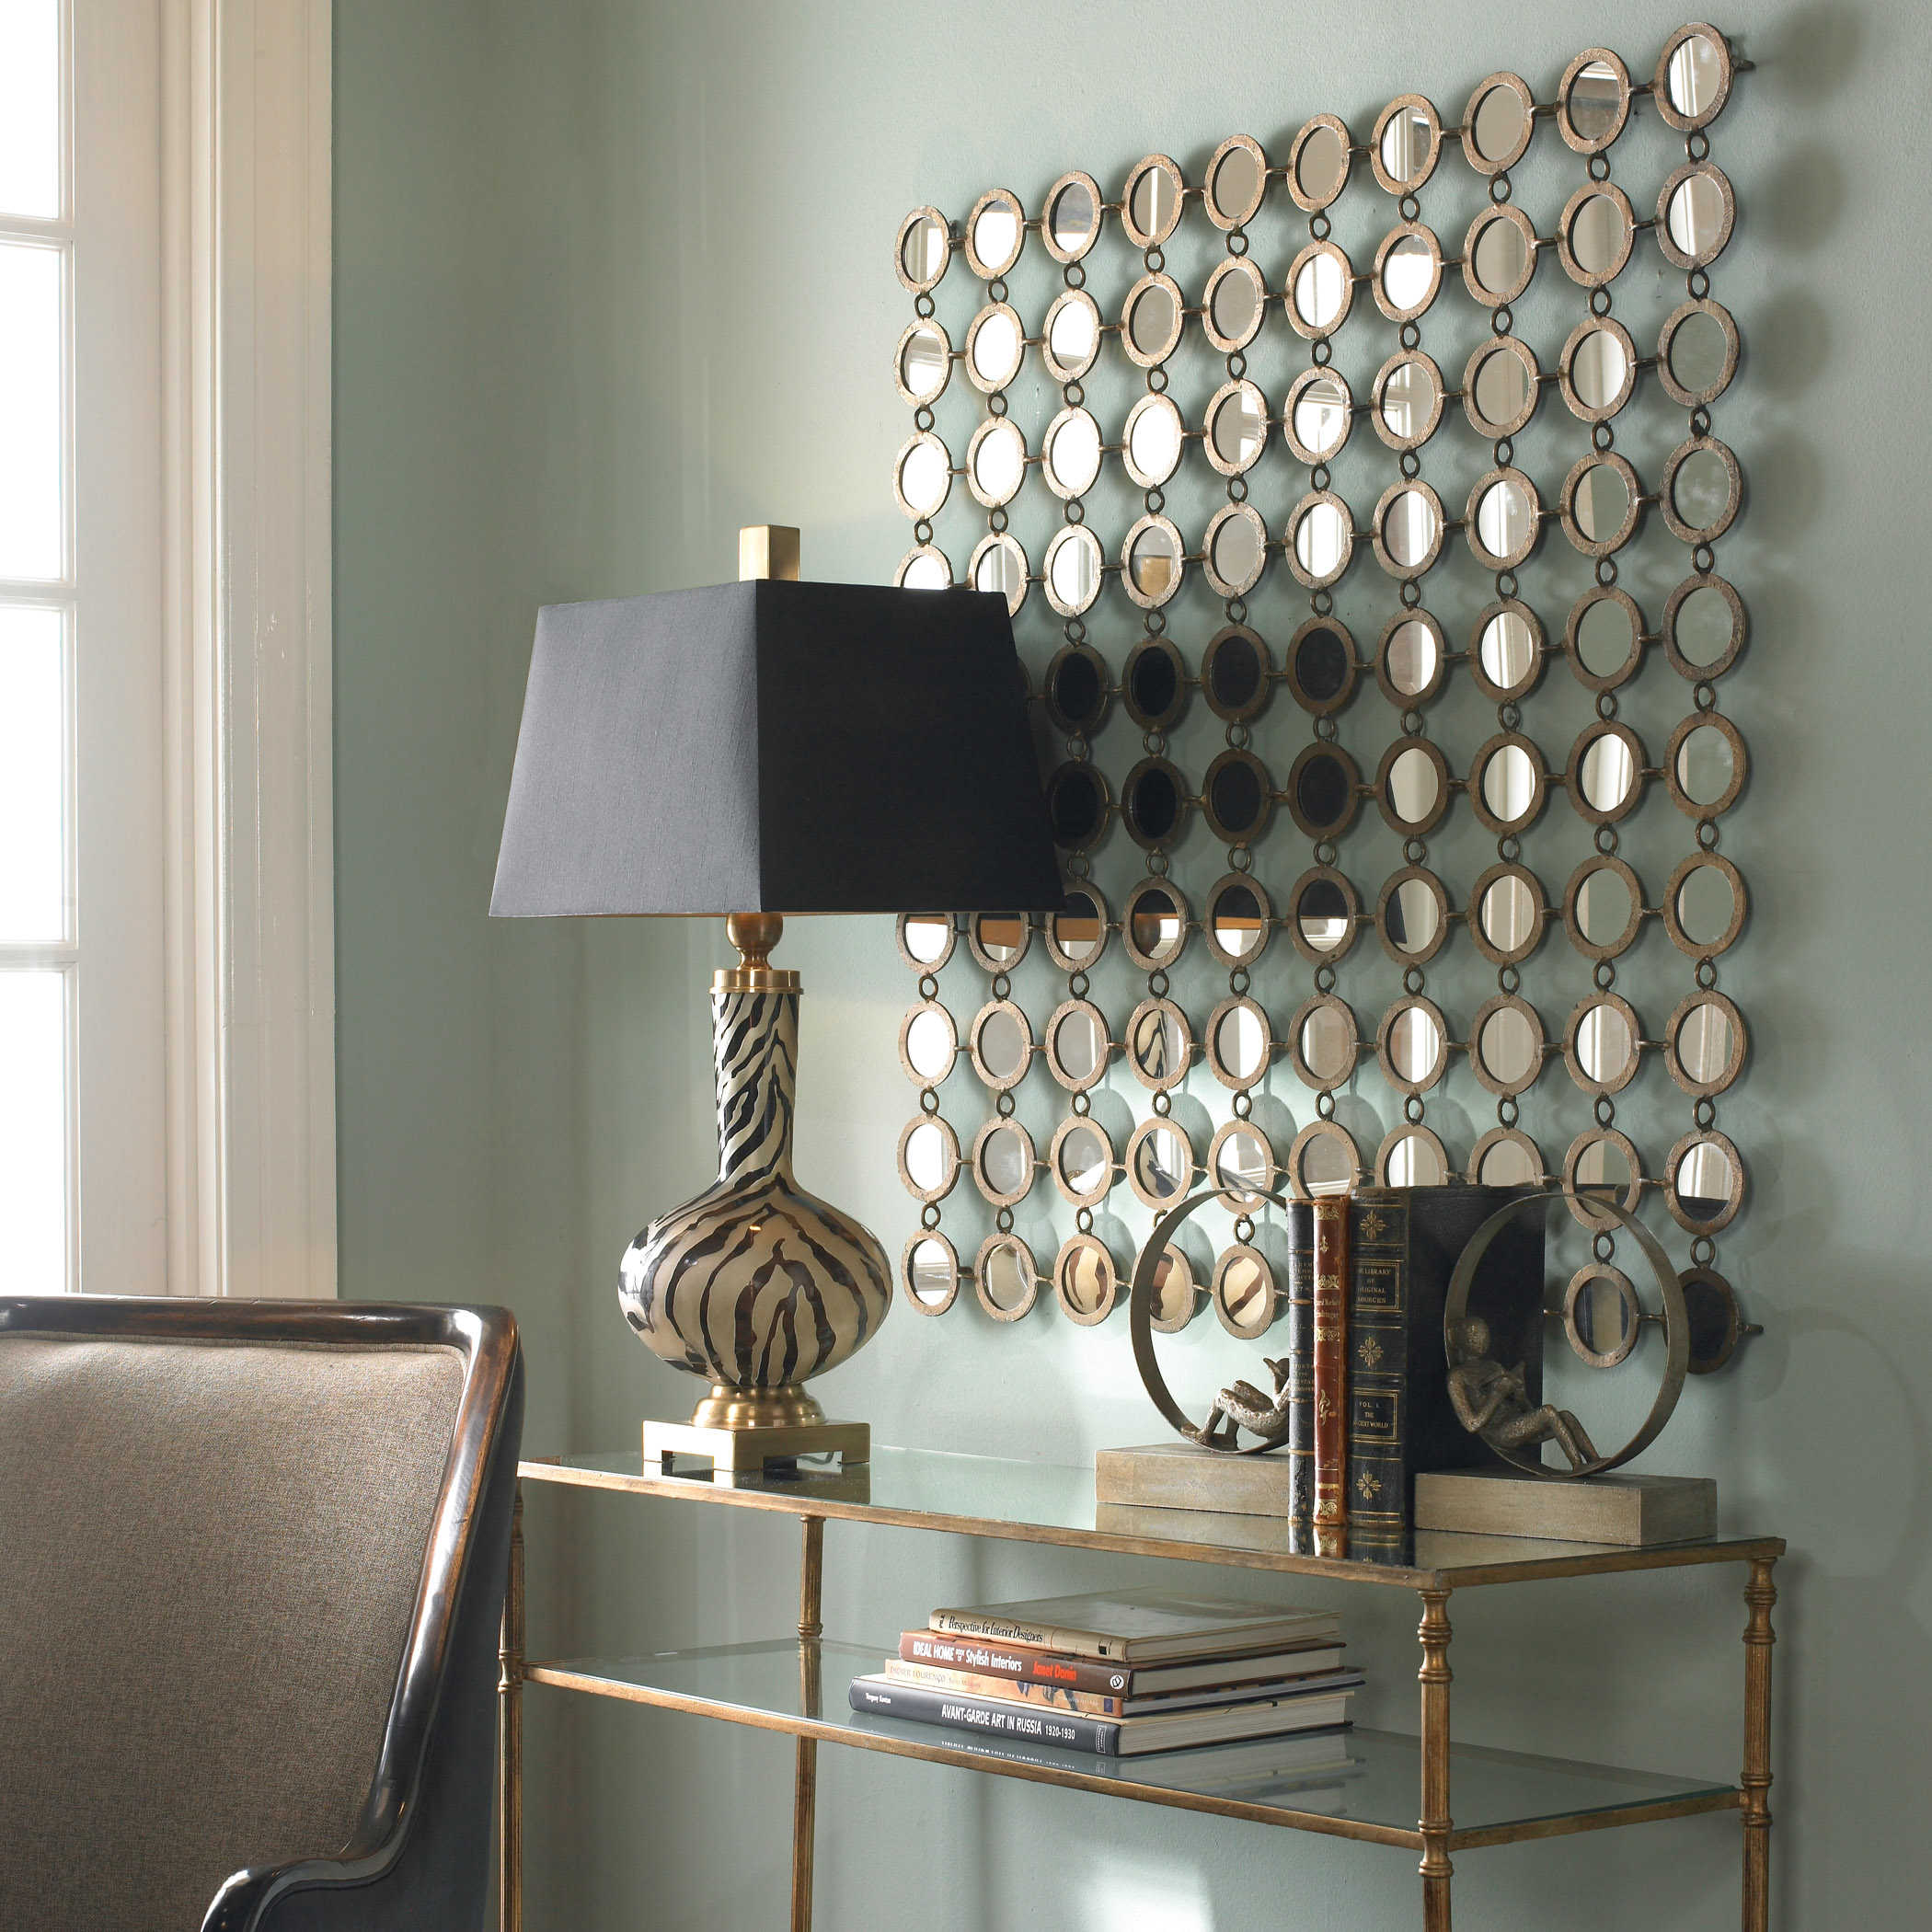 Dinuba Mirrored Wall Decor Uttermost